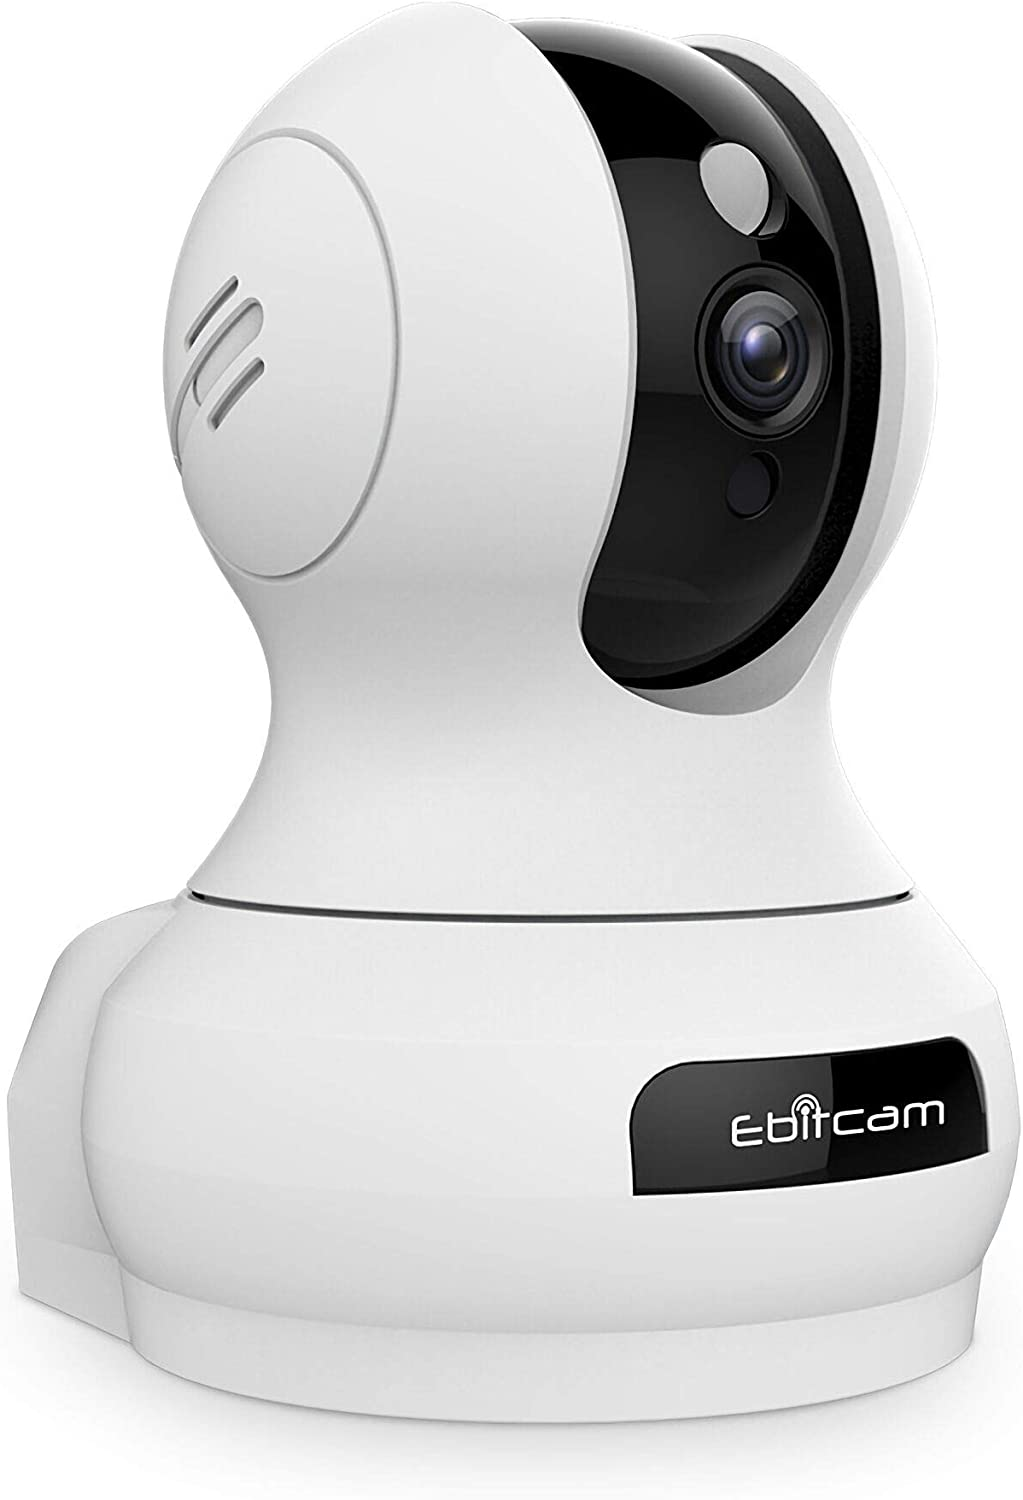 WiFi Monitor-Ebitcam 1080P Smart Home WiFi Camera with Pan/Tilt/Zoom,Night Vision Motion Detection 2-Way Audio -for Home Safety Baby Pet Cam, Cloud Storage, Compatible with Alexa